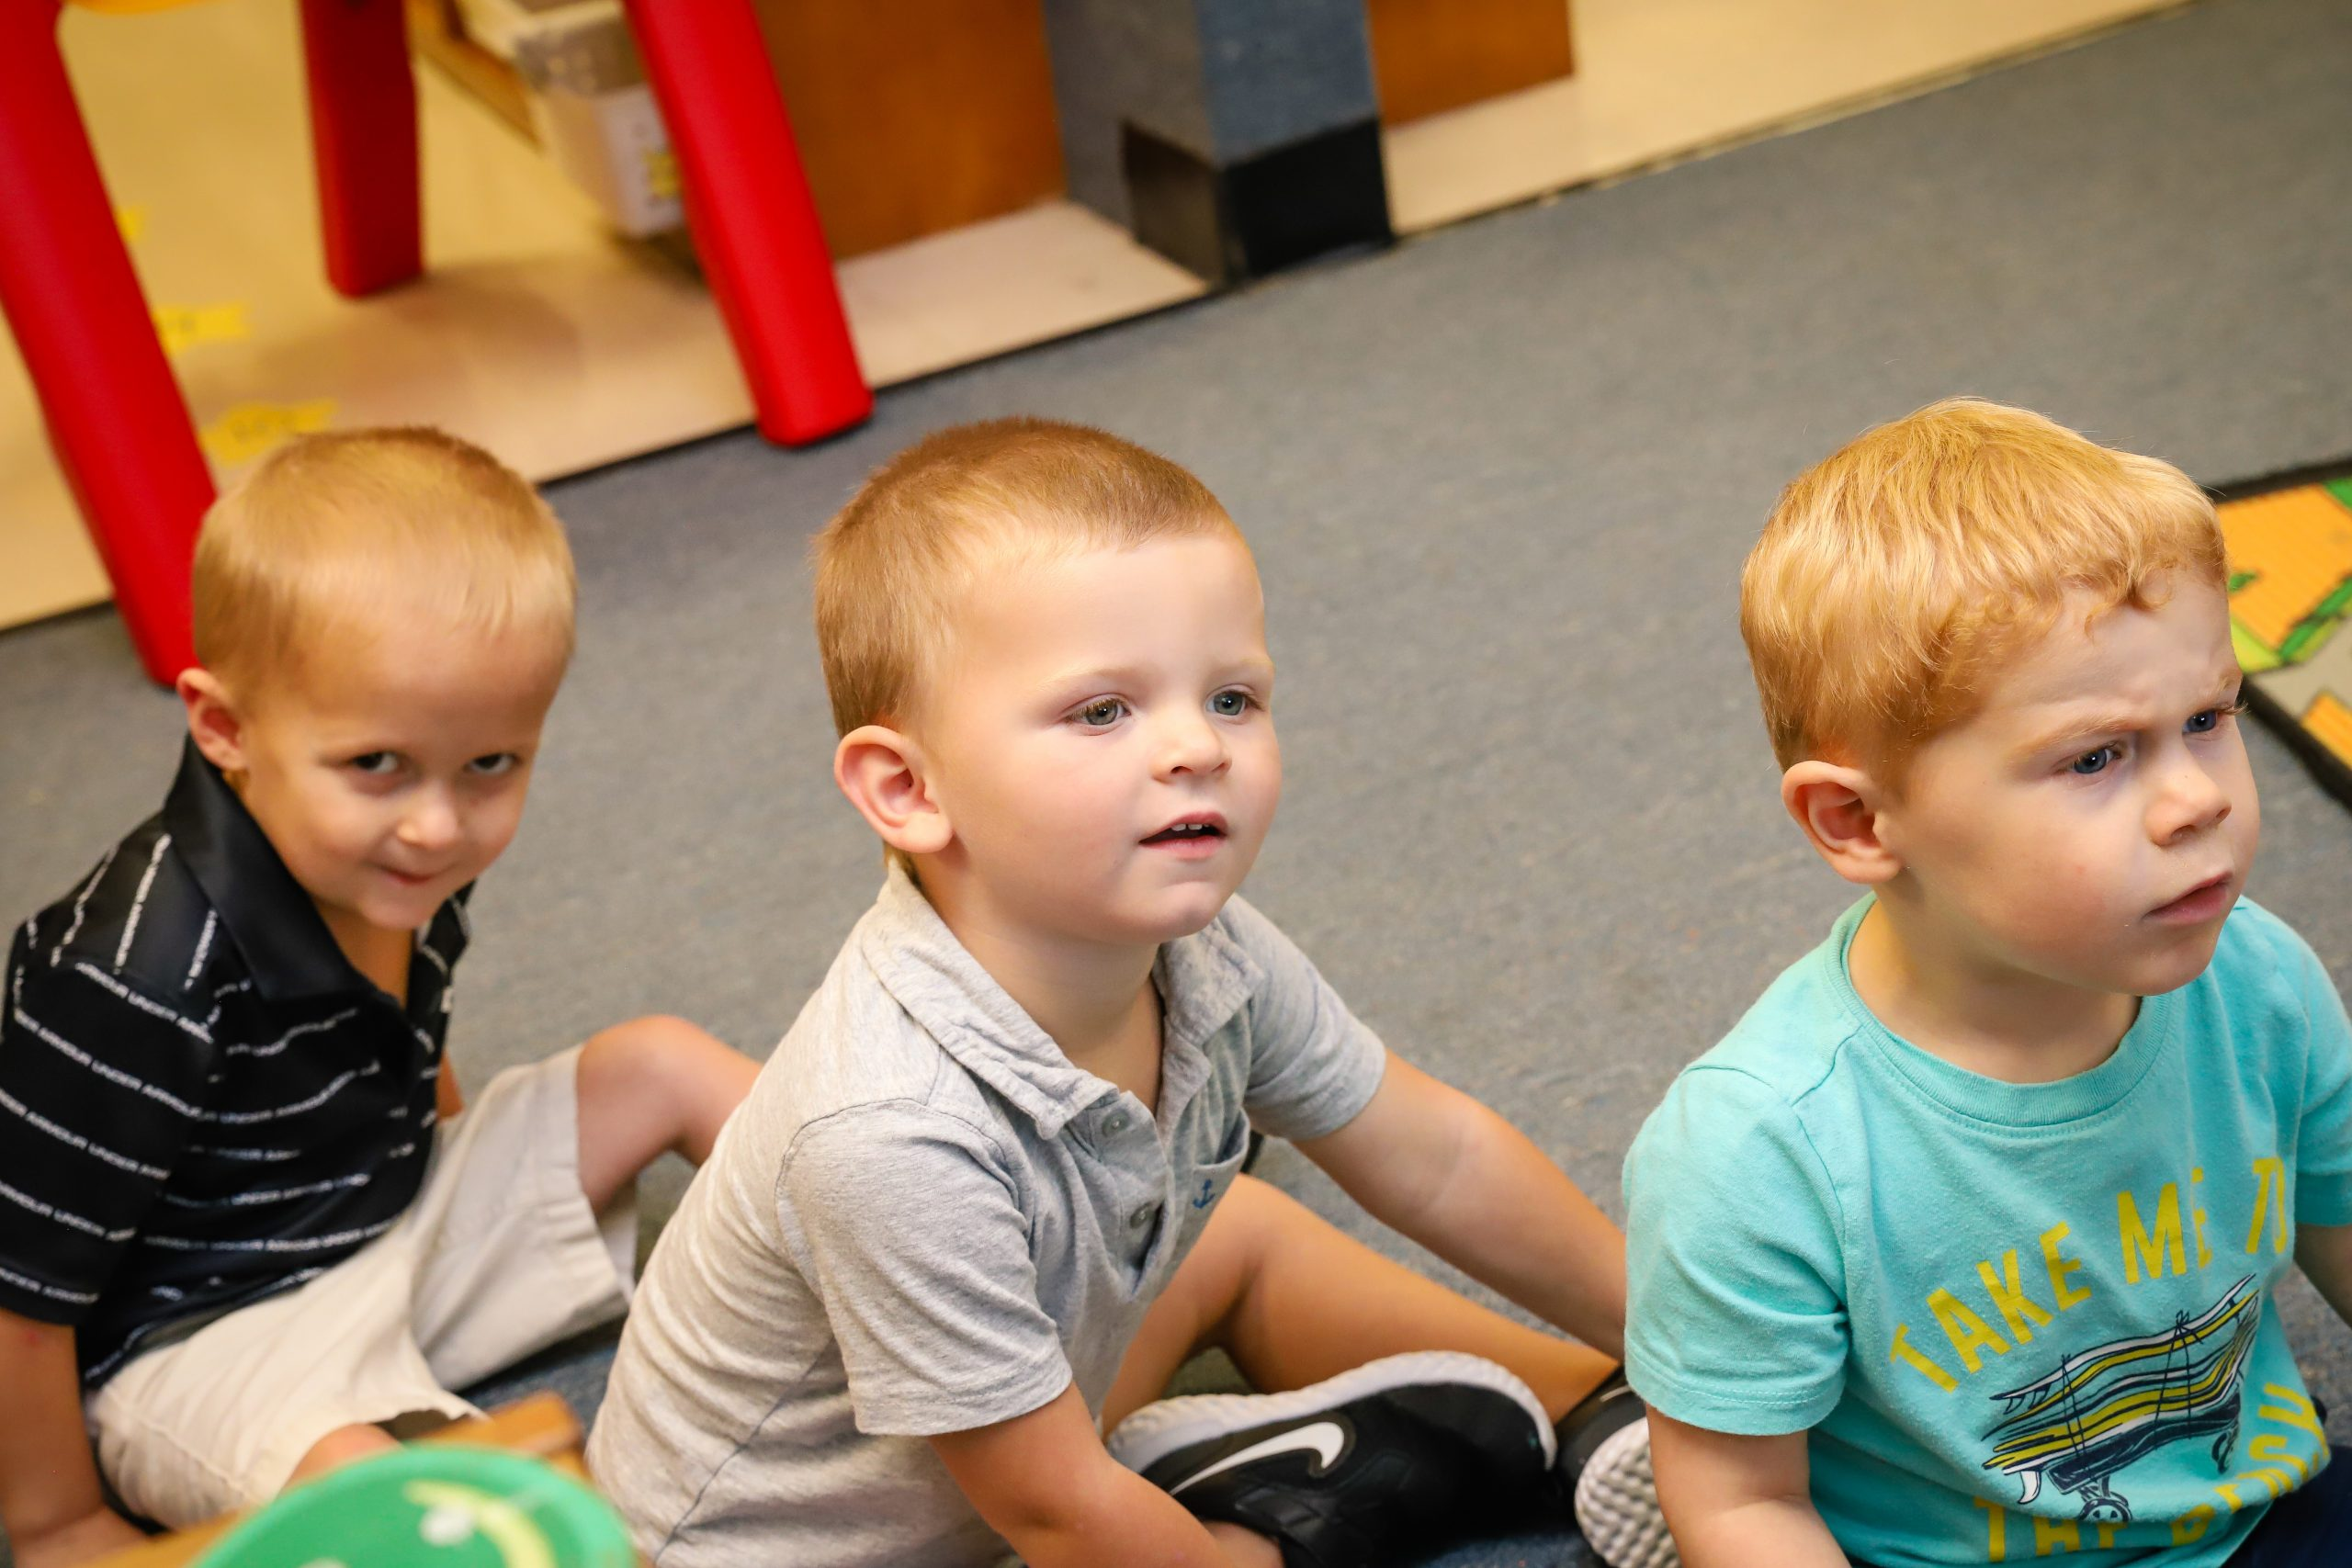 Country Home Learning Center has a fun and safe childcare environment for children of all ages